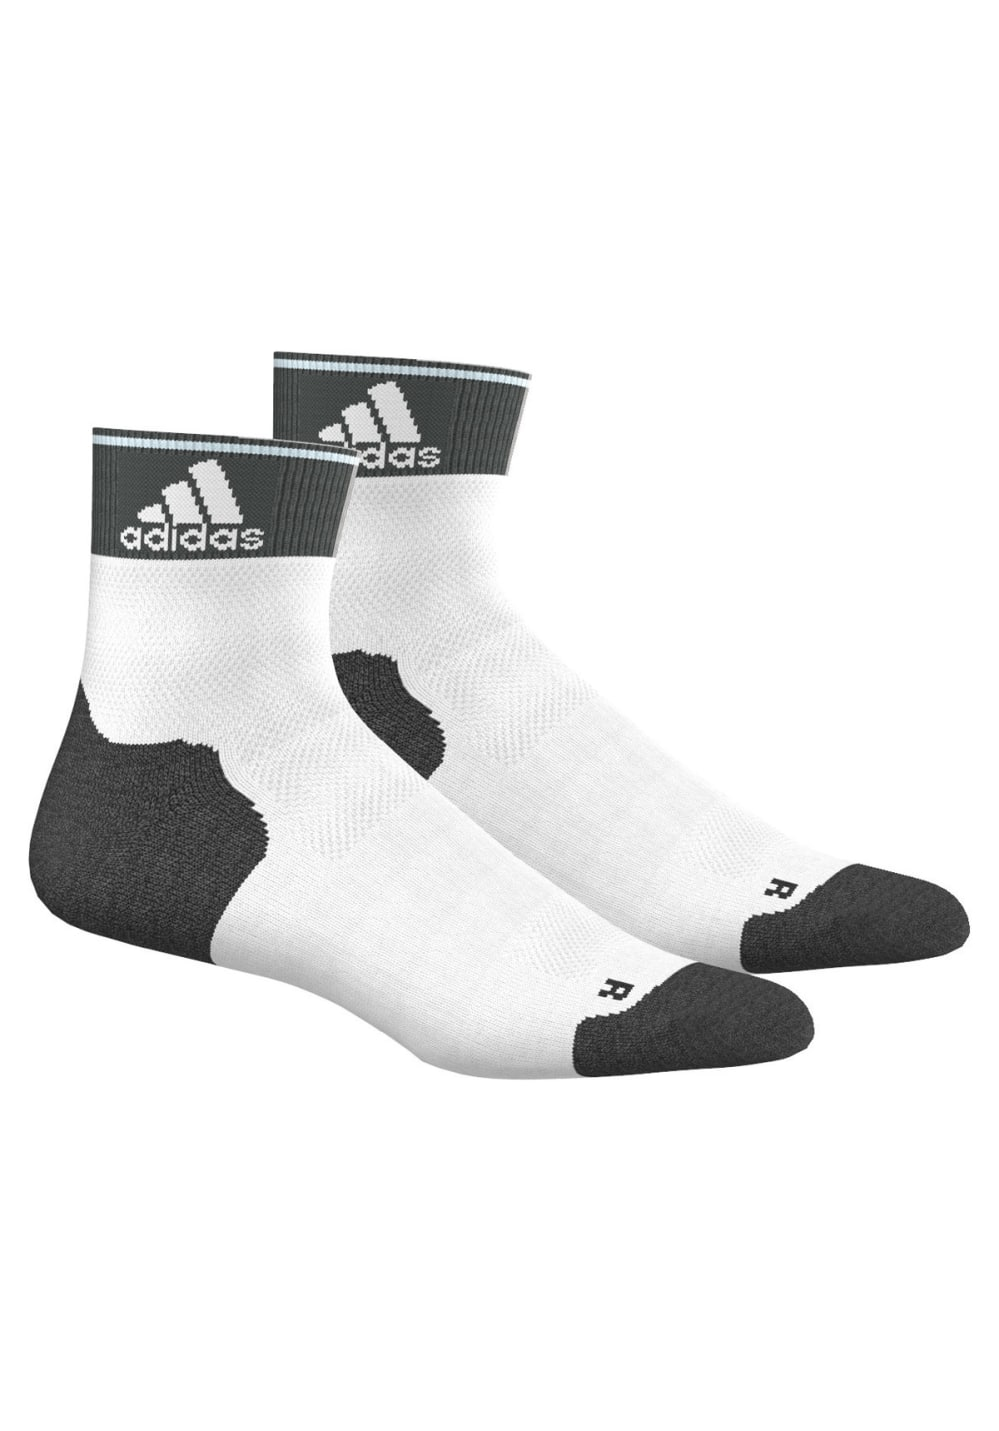 adidas Run Energy Ankle Tc 2P Laufsocken - Weiß, Gr. 37-39